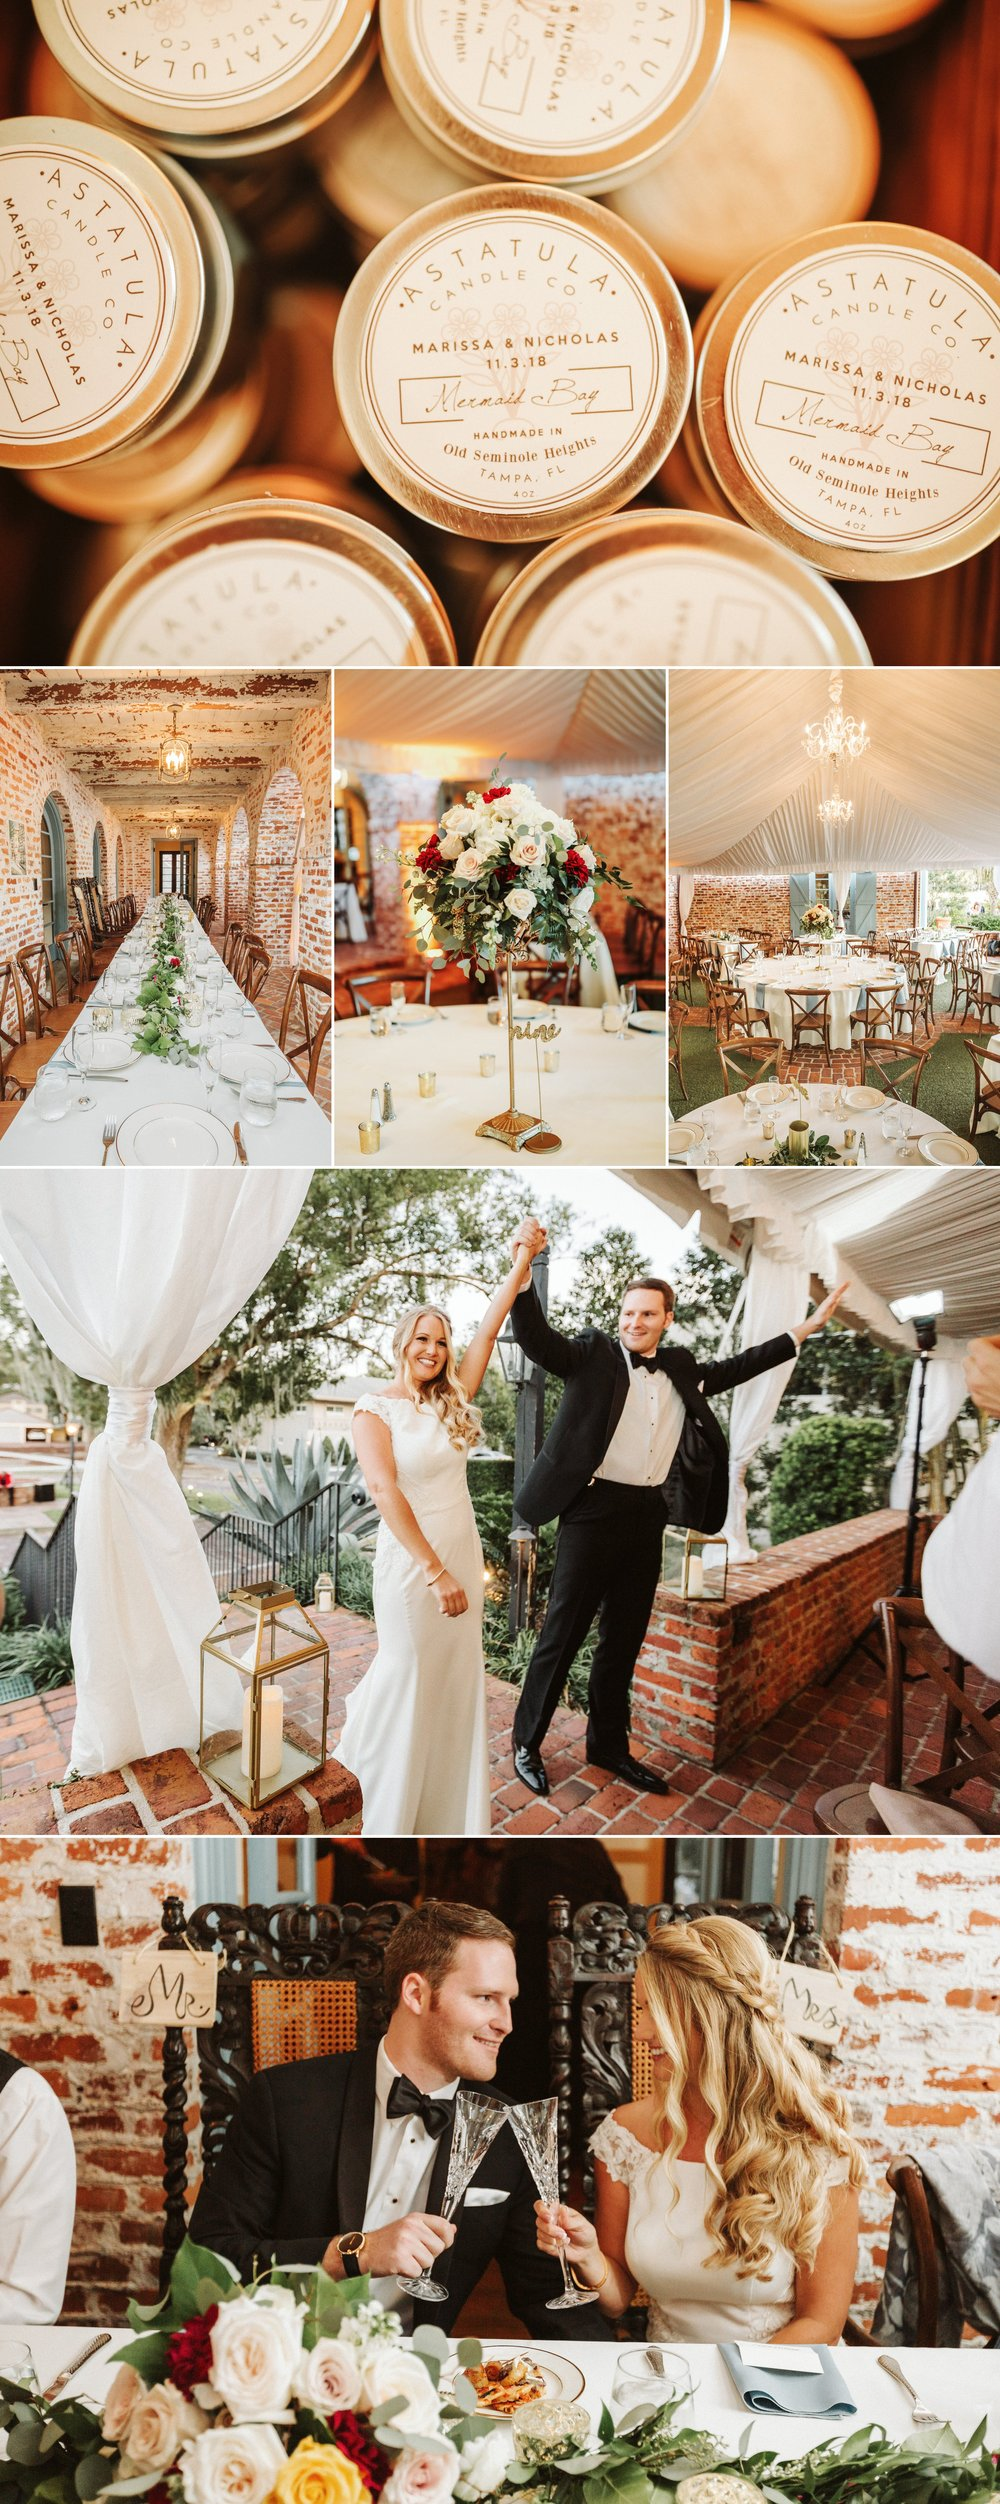 Casa Feliz Romantic Black Tie Wedding- Nick + Marissa- by Shaina DeCiryan Photography9.jpg